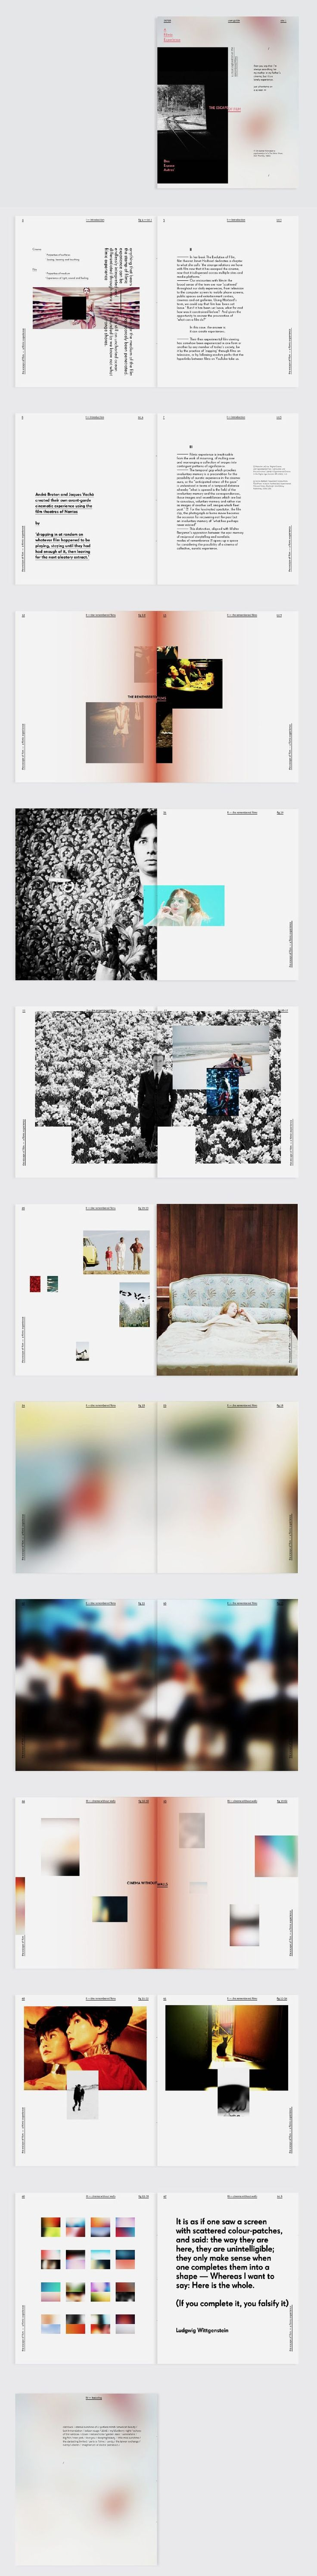 41 best Coffee table book layouts images on Pinterest